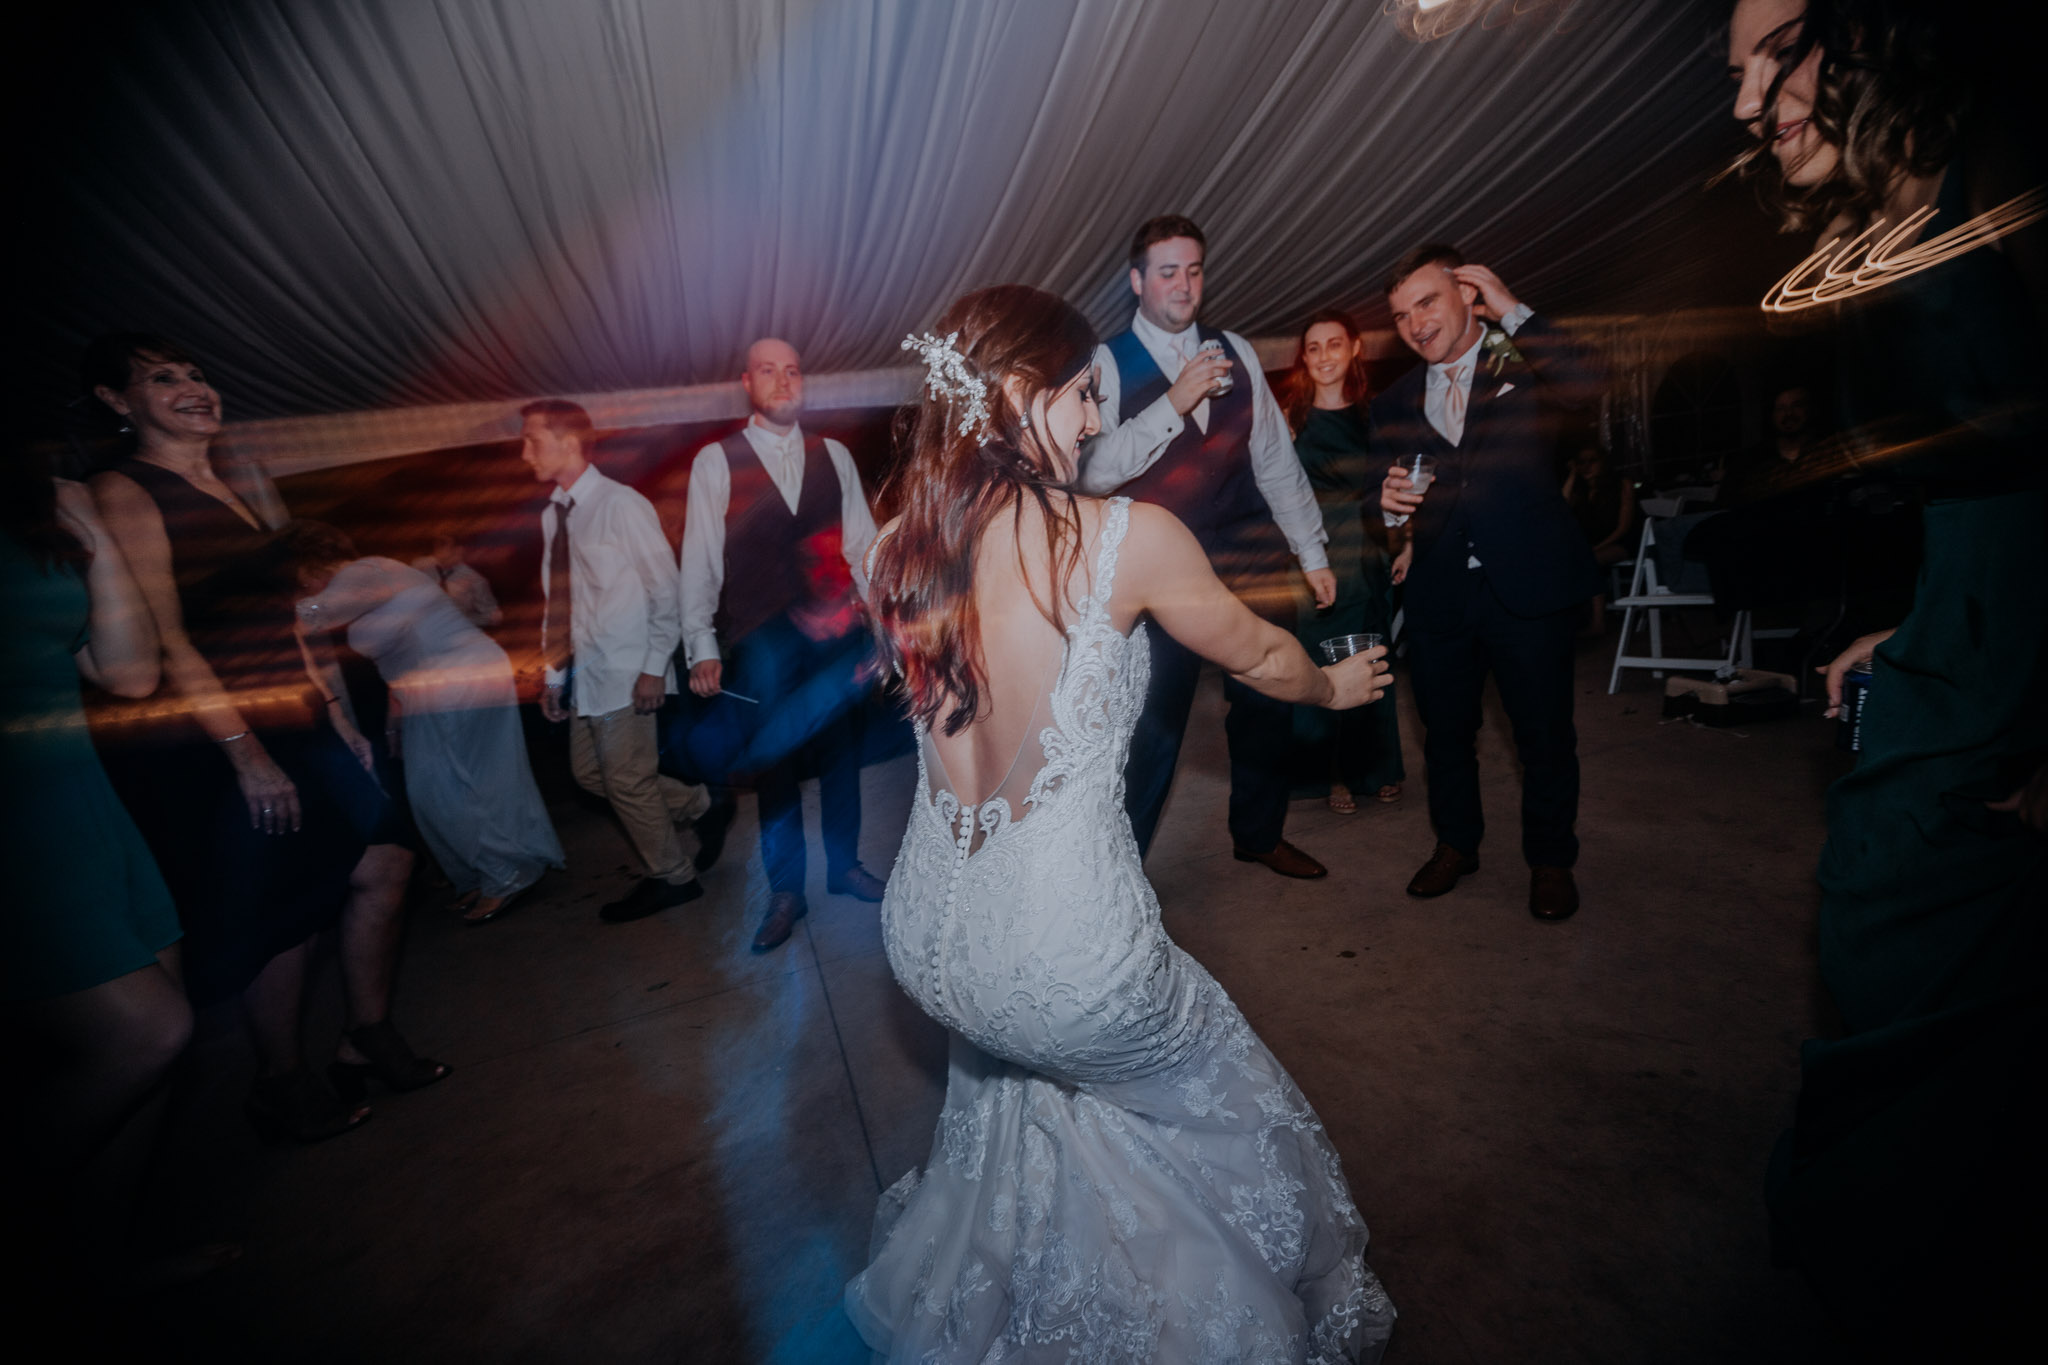 Cambria_Creative_Photography_Historic_Shady_Lane_Wedding_York-6011.jpg